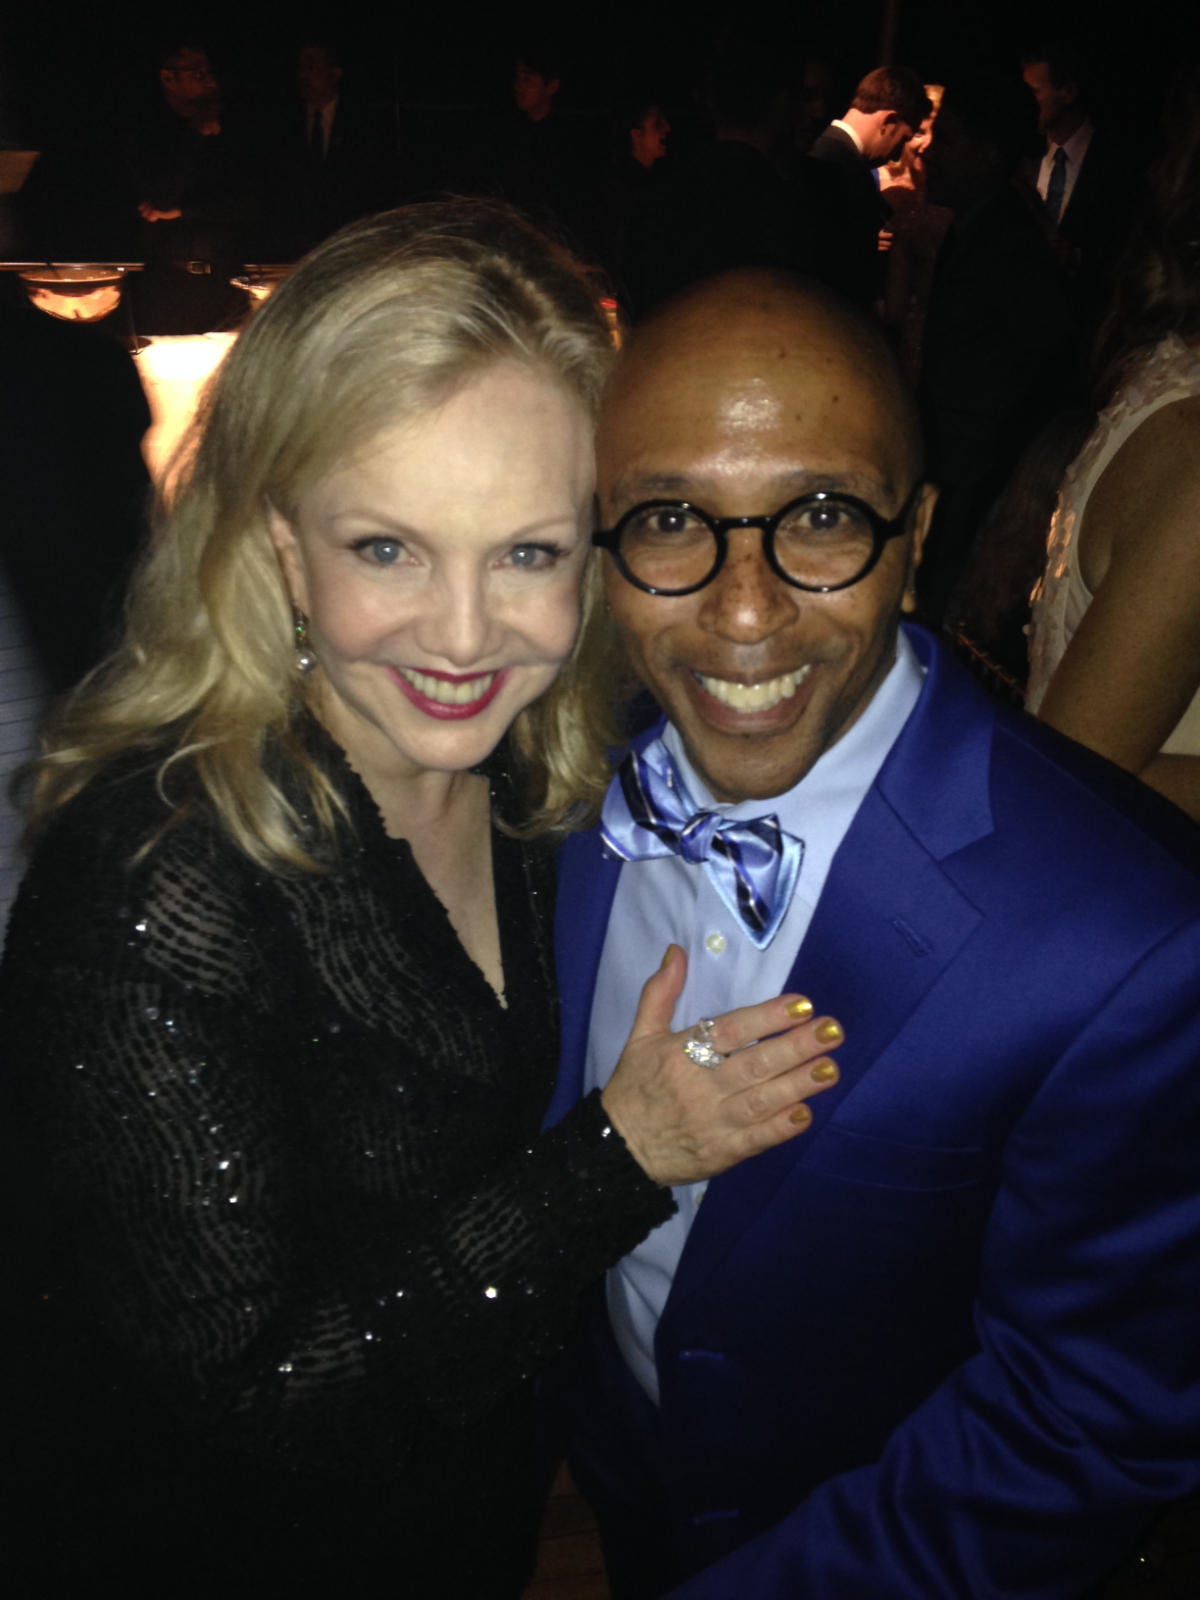 Susan Stroman and Tomé Cousin. Tomé is the Directing Supervisor for international and regional productions of Contact. Stro is wearing a sequined black outfit and Tomé is wearing a blue shirt, tie, suit, and glasses.